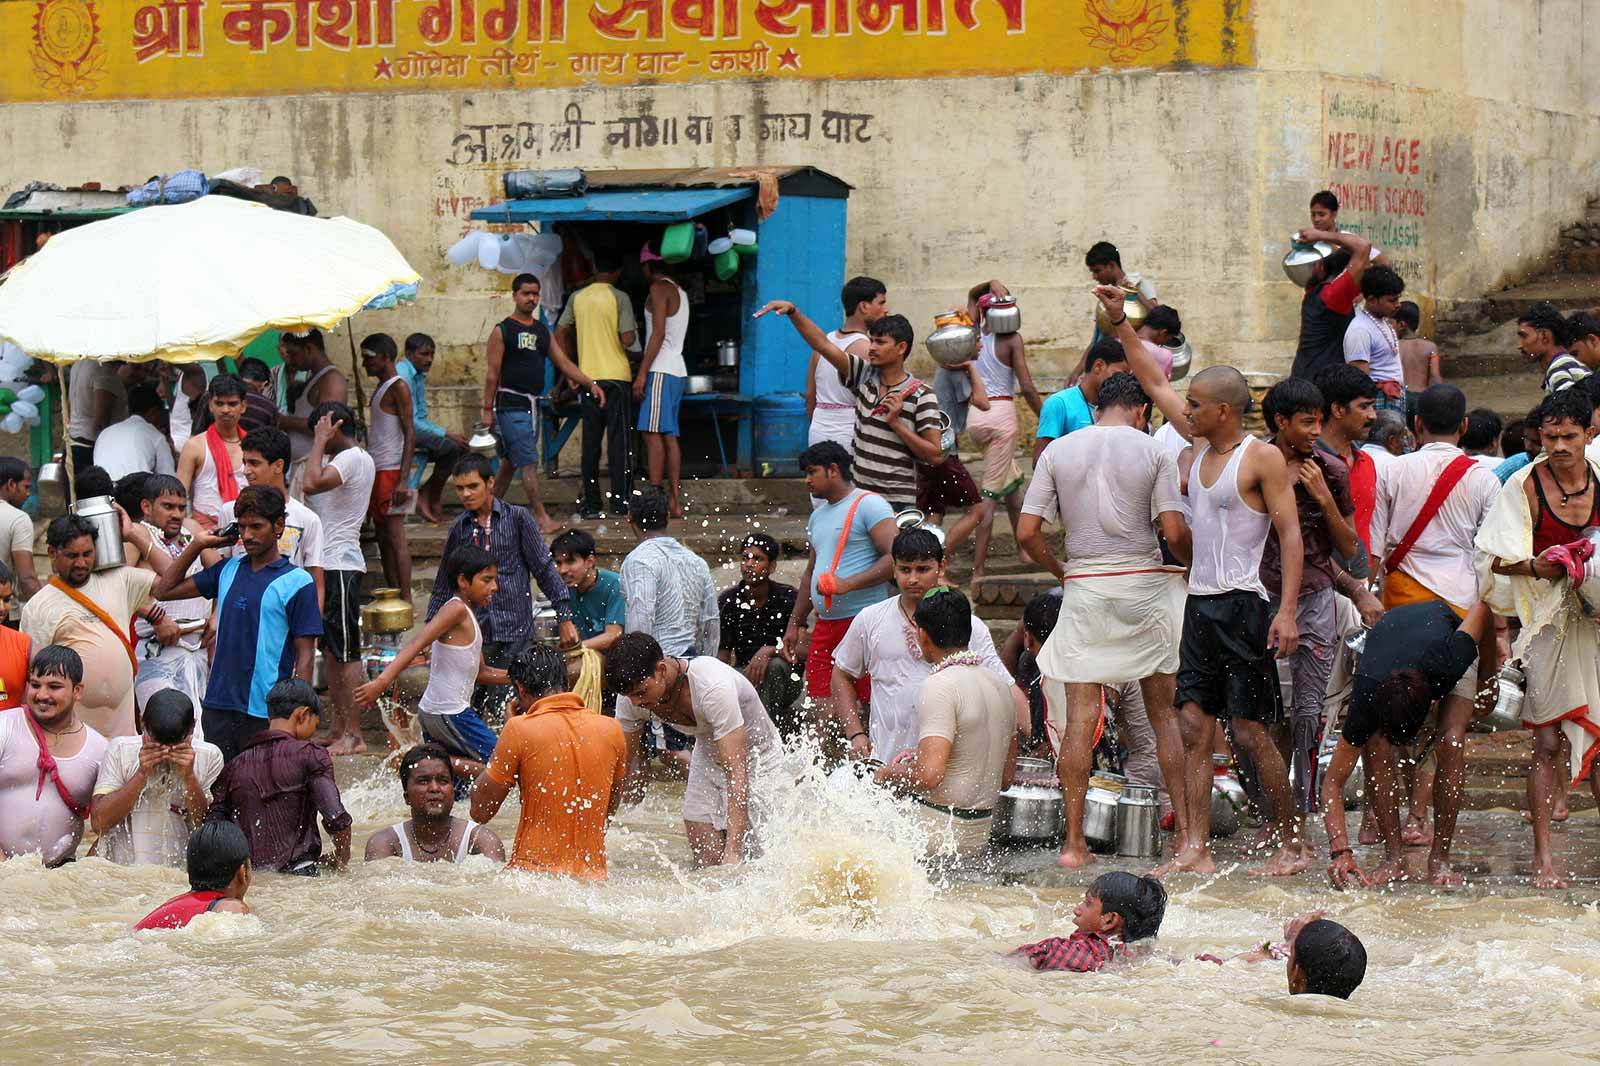 The swiftly moving Ganges in Varanasi, especially in its upper reaches, where a bather has to grasp an anchored chain in order to not be carried away, is considered especially purifying.